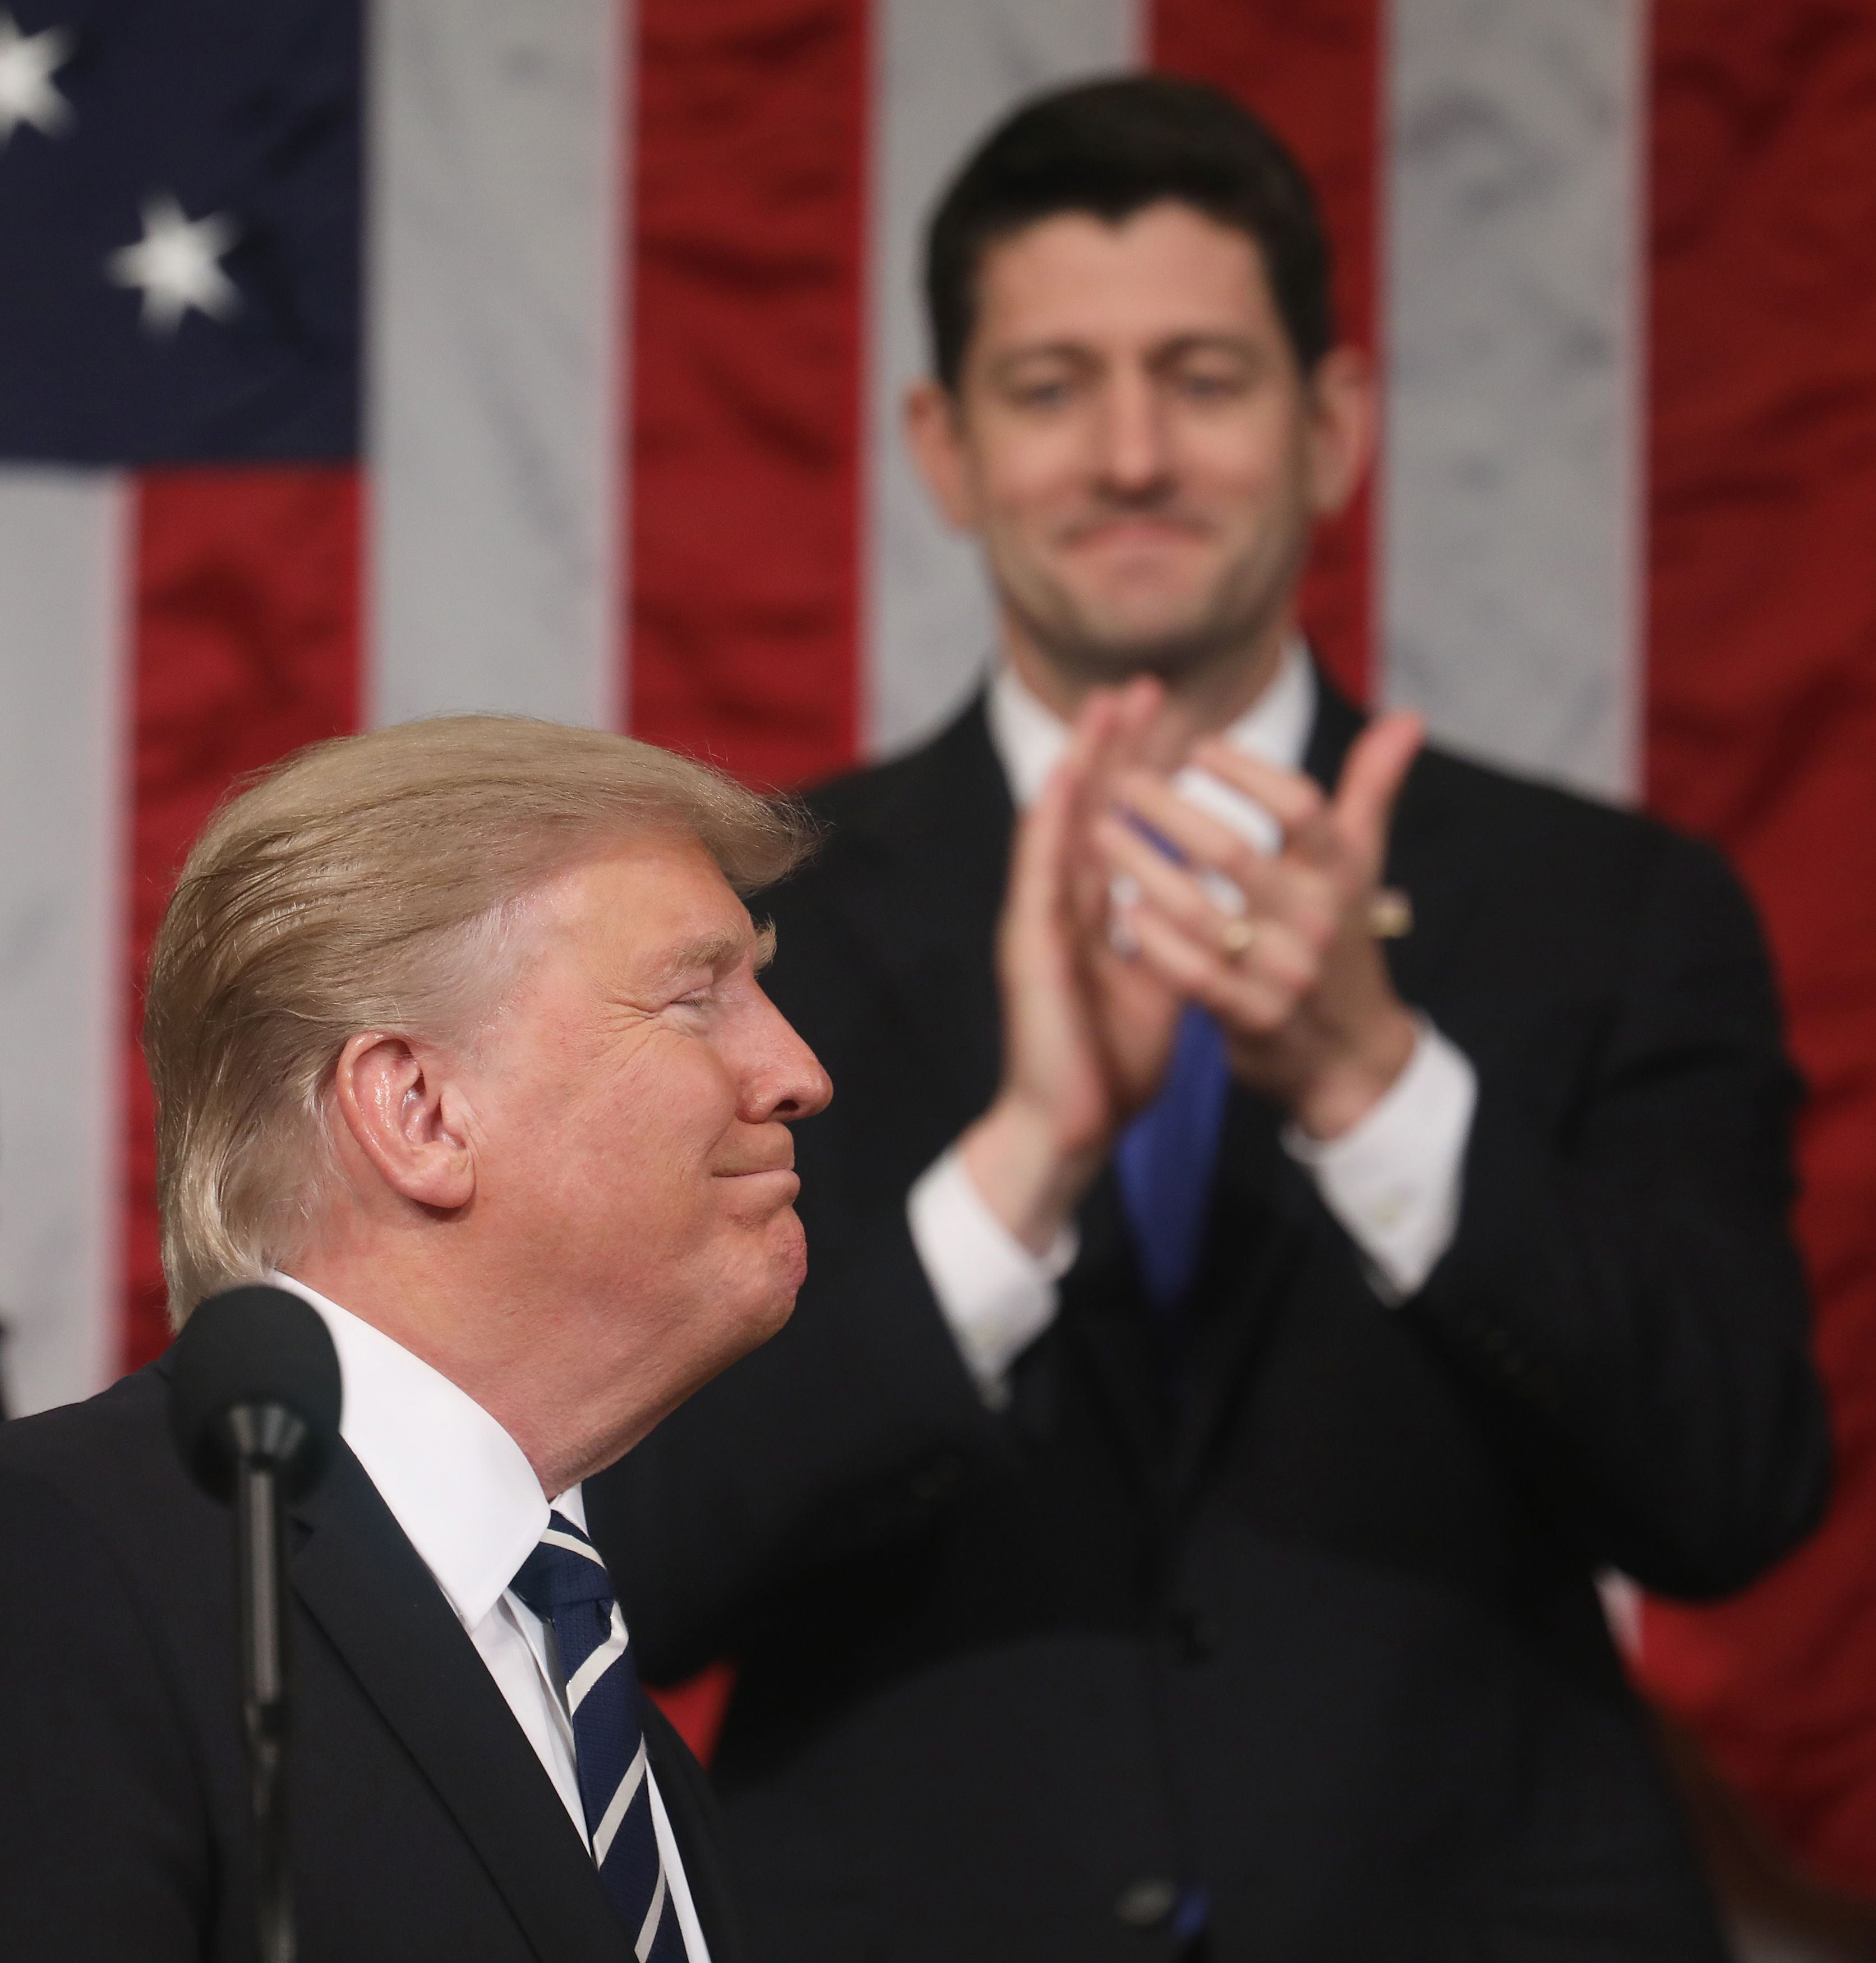 Speaker of the House Paul Ryan (R) applauds as U.S. President Donald Trump delivers his first address to a joint session of Congress from the floor of the House of Representatives iin Washington, U.S., February 28, 2017.  REUTERS/Jim Lo Scalzo/Pool